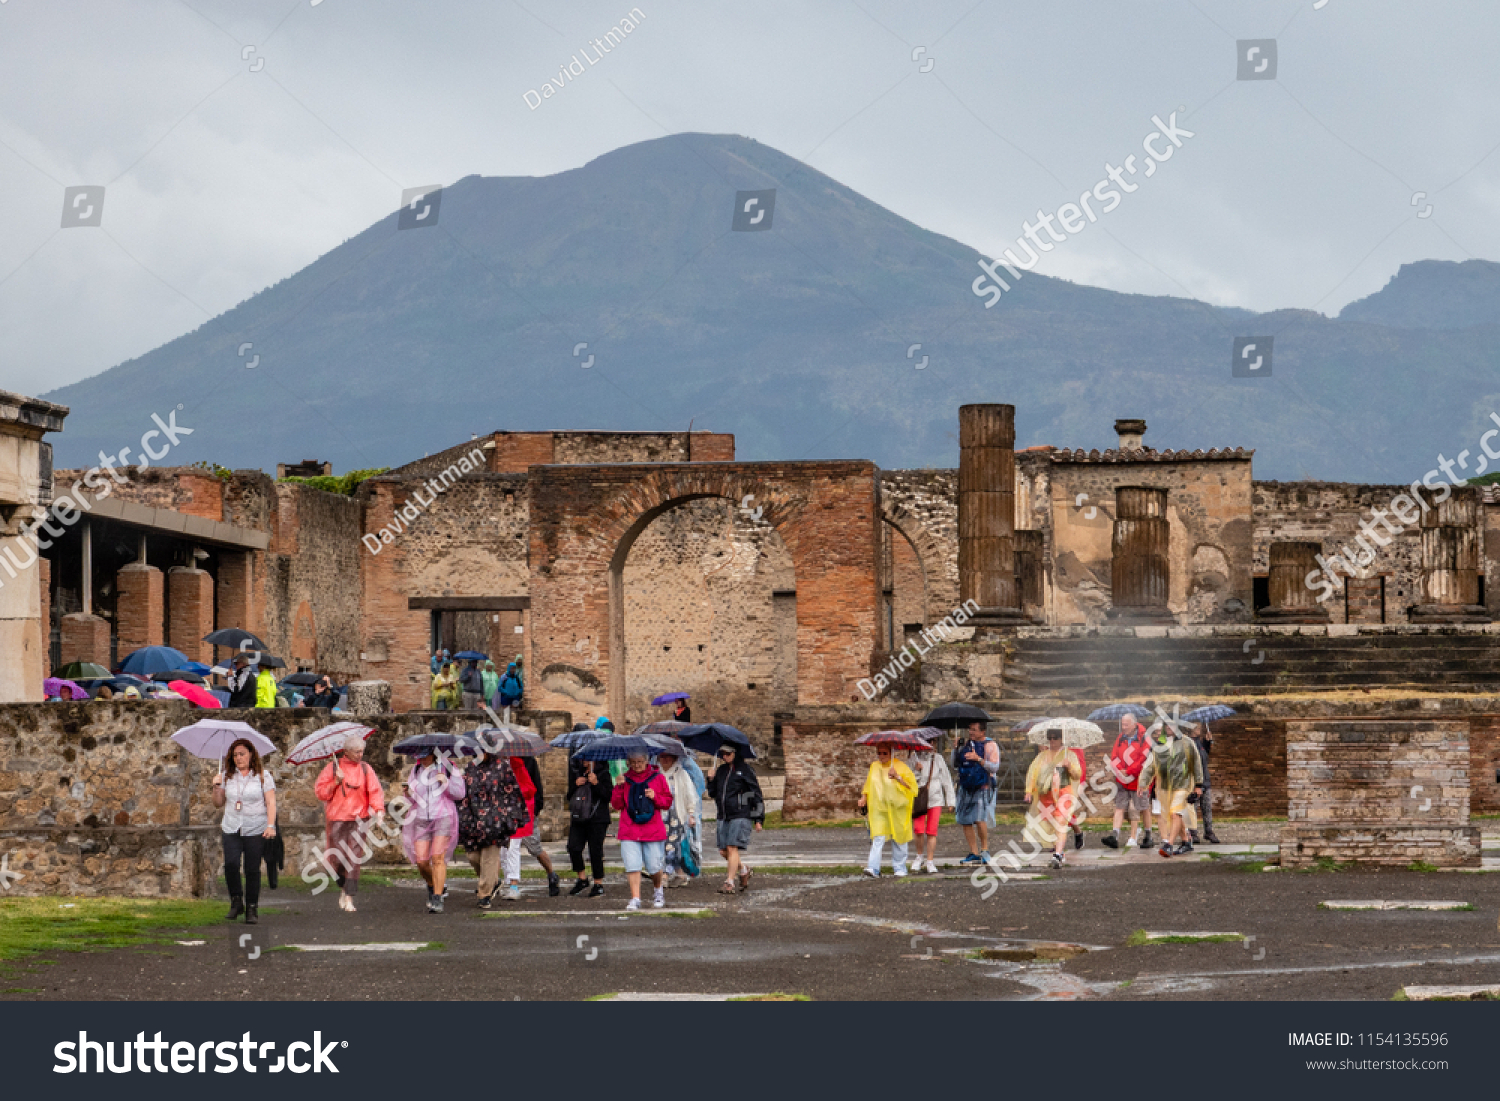 Campania, Italy - June 14, 2018: Tourists visit the archaeological ruins of Pompeii on a rainy day, wearing ponchos and carrying umbrellas.  The volcano Mount Vesuvius stands in the background.